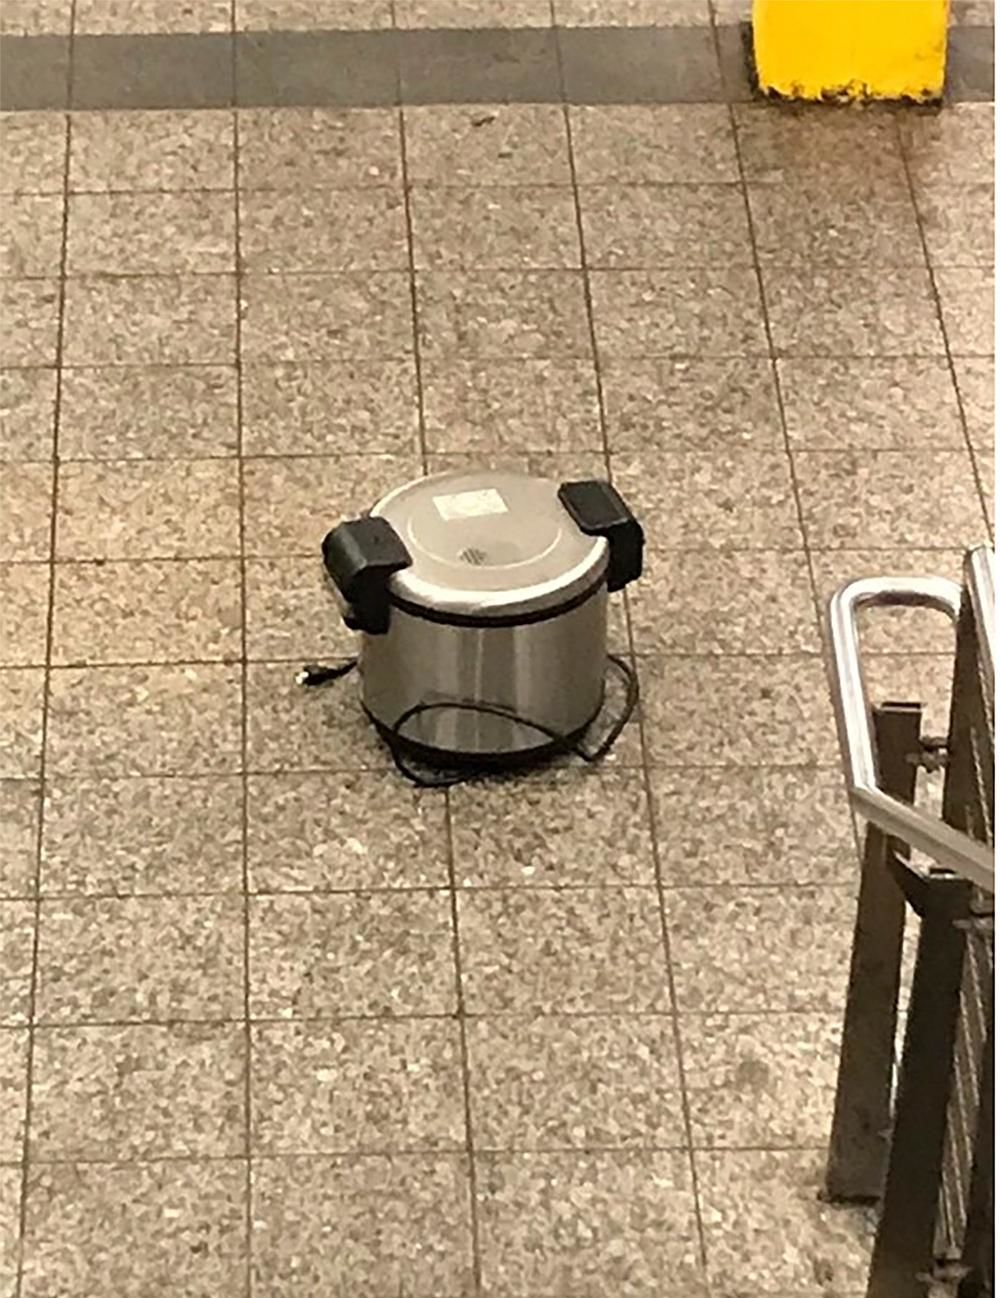 This photo provided by NYPD shows a suspicious object which looks like a pressure cooker or electric crockpot on the floor of the New York City Subway platform on Friday, Aug. 16, 2019 in New York.{ } (NYPD via AP)